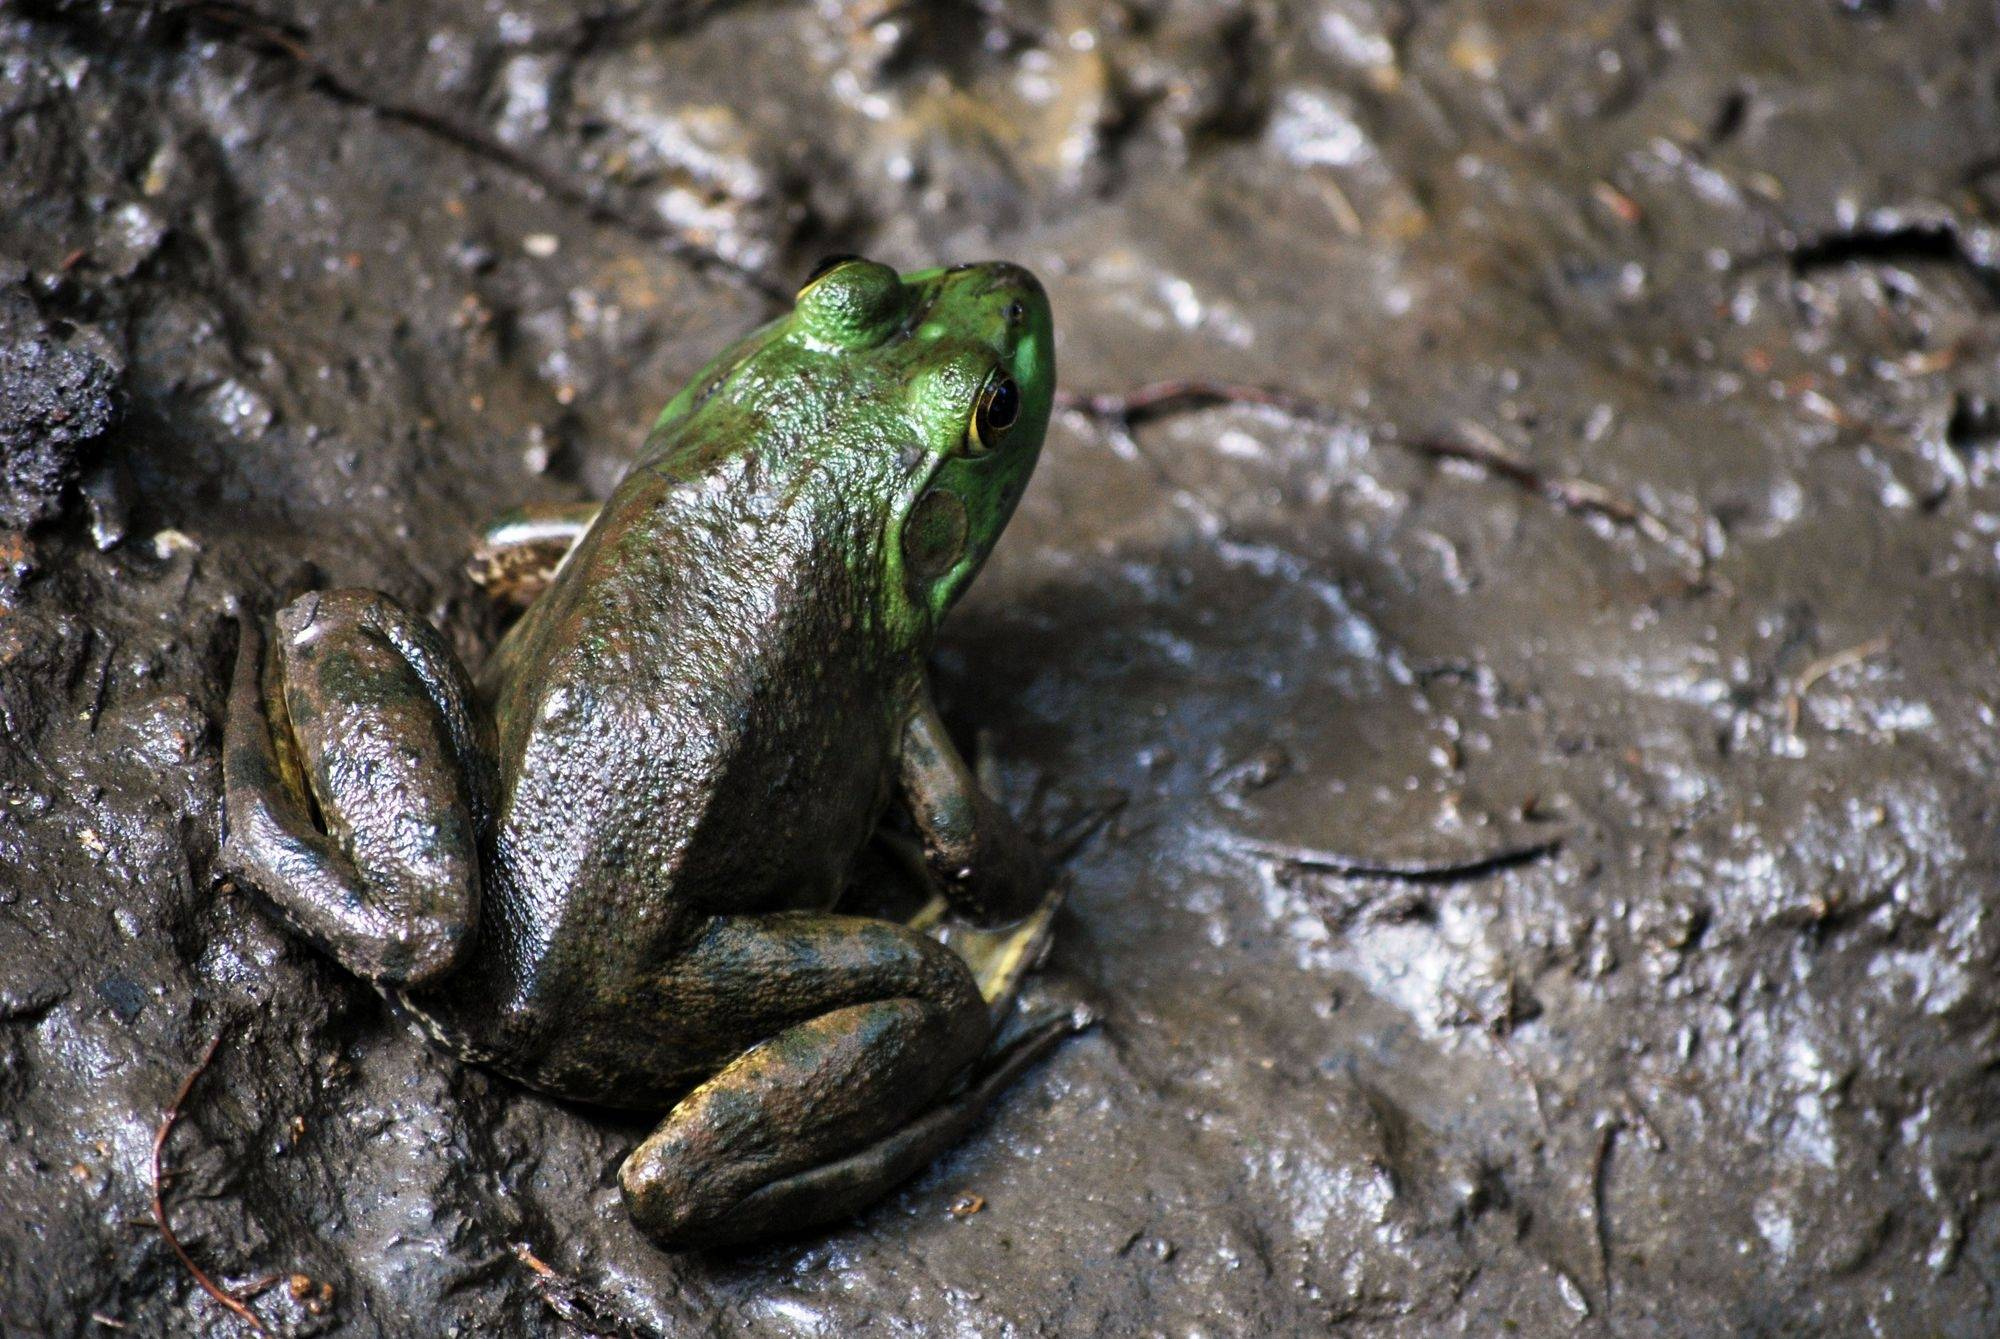 A small frog suns itself while in muddy surroundings at the Spring Valley Nature Center in Schaumburg.